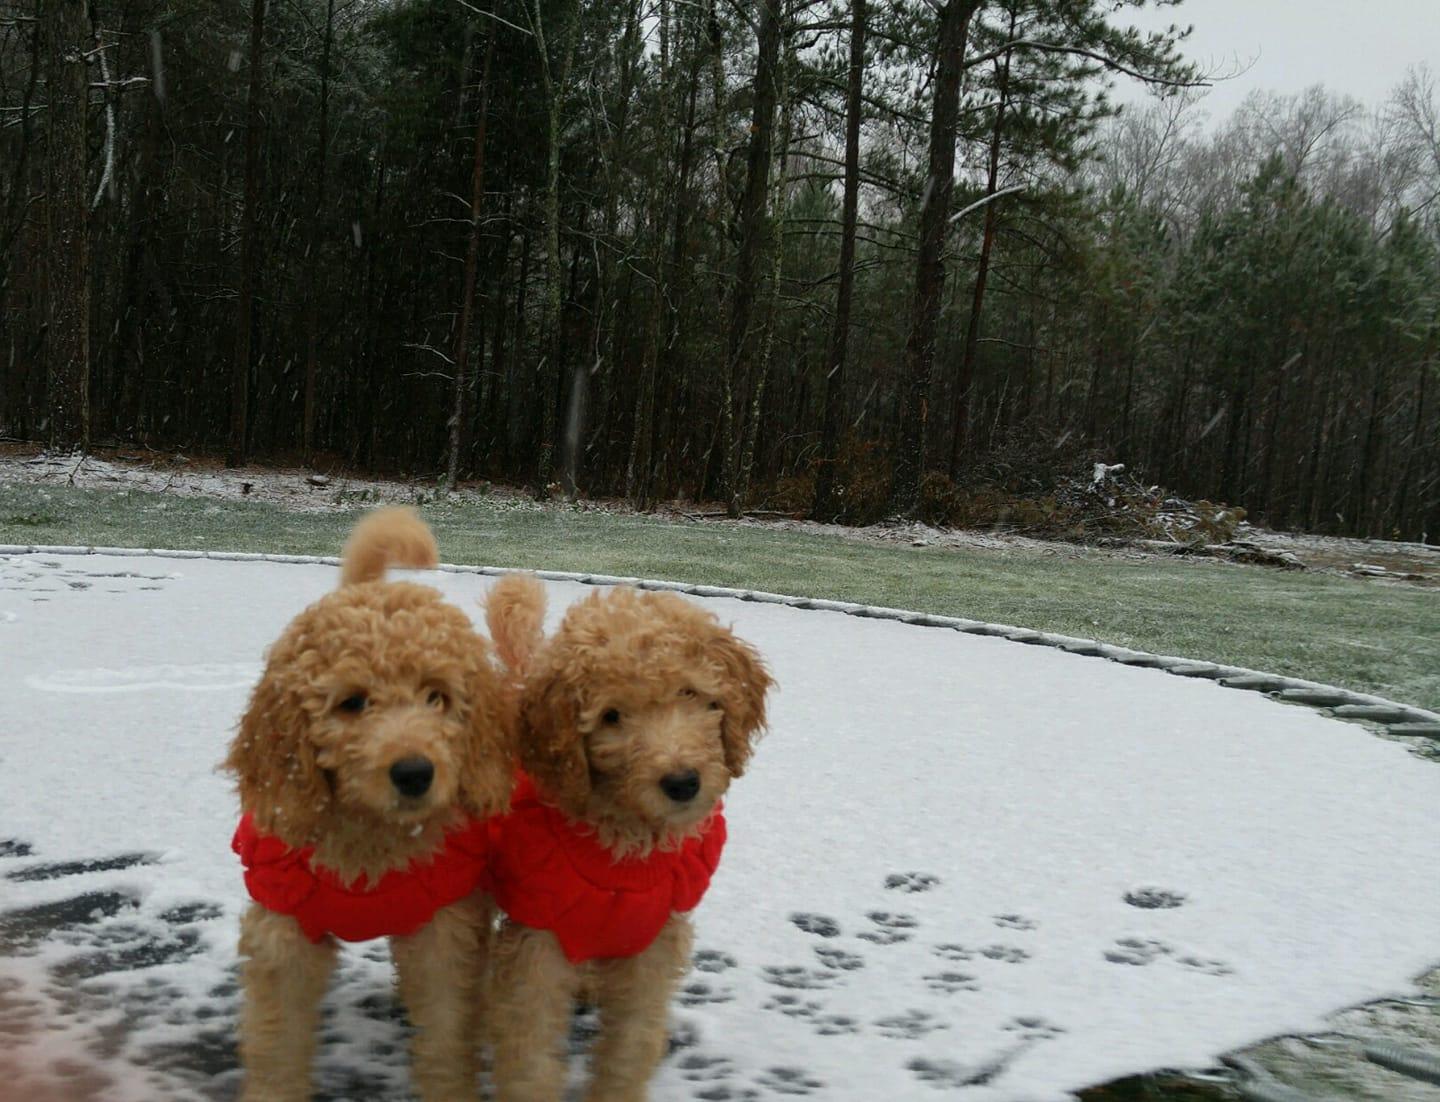 <div class='meta'><div class='origin-logo' data-origin='none'></div><span class='caption-text' data-credit='Credit: Sharee Avila'>These pups are ready for the snow</span></div>